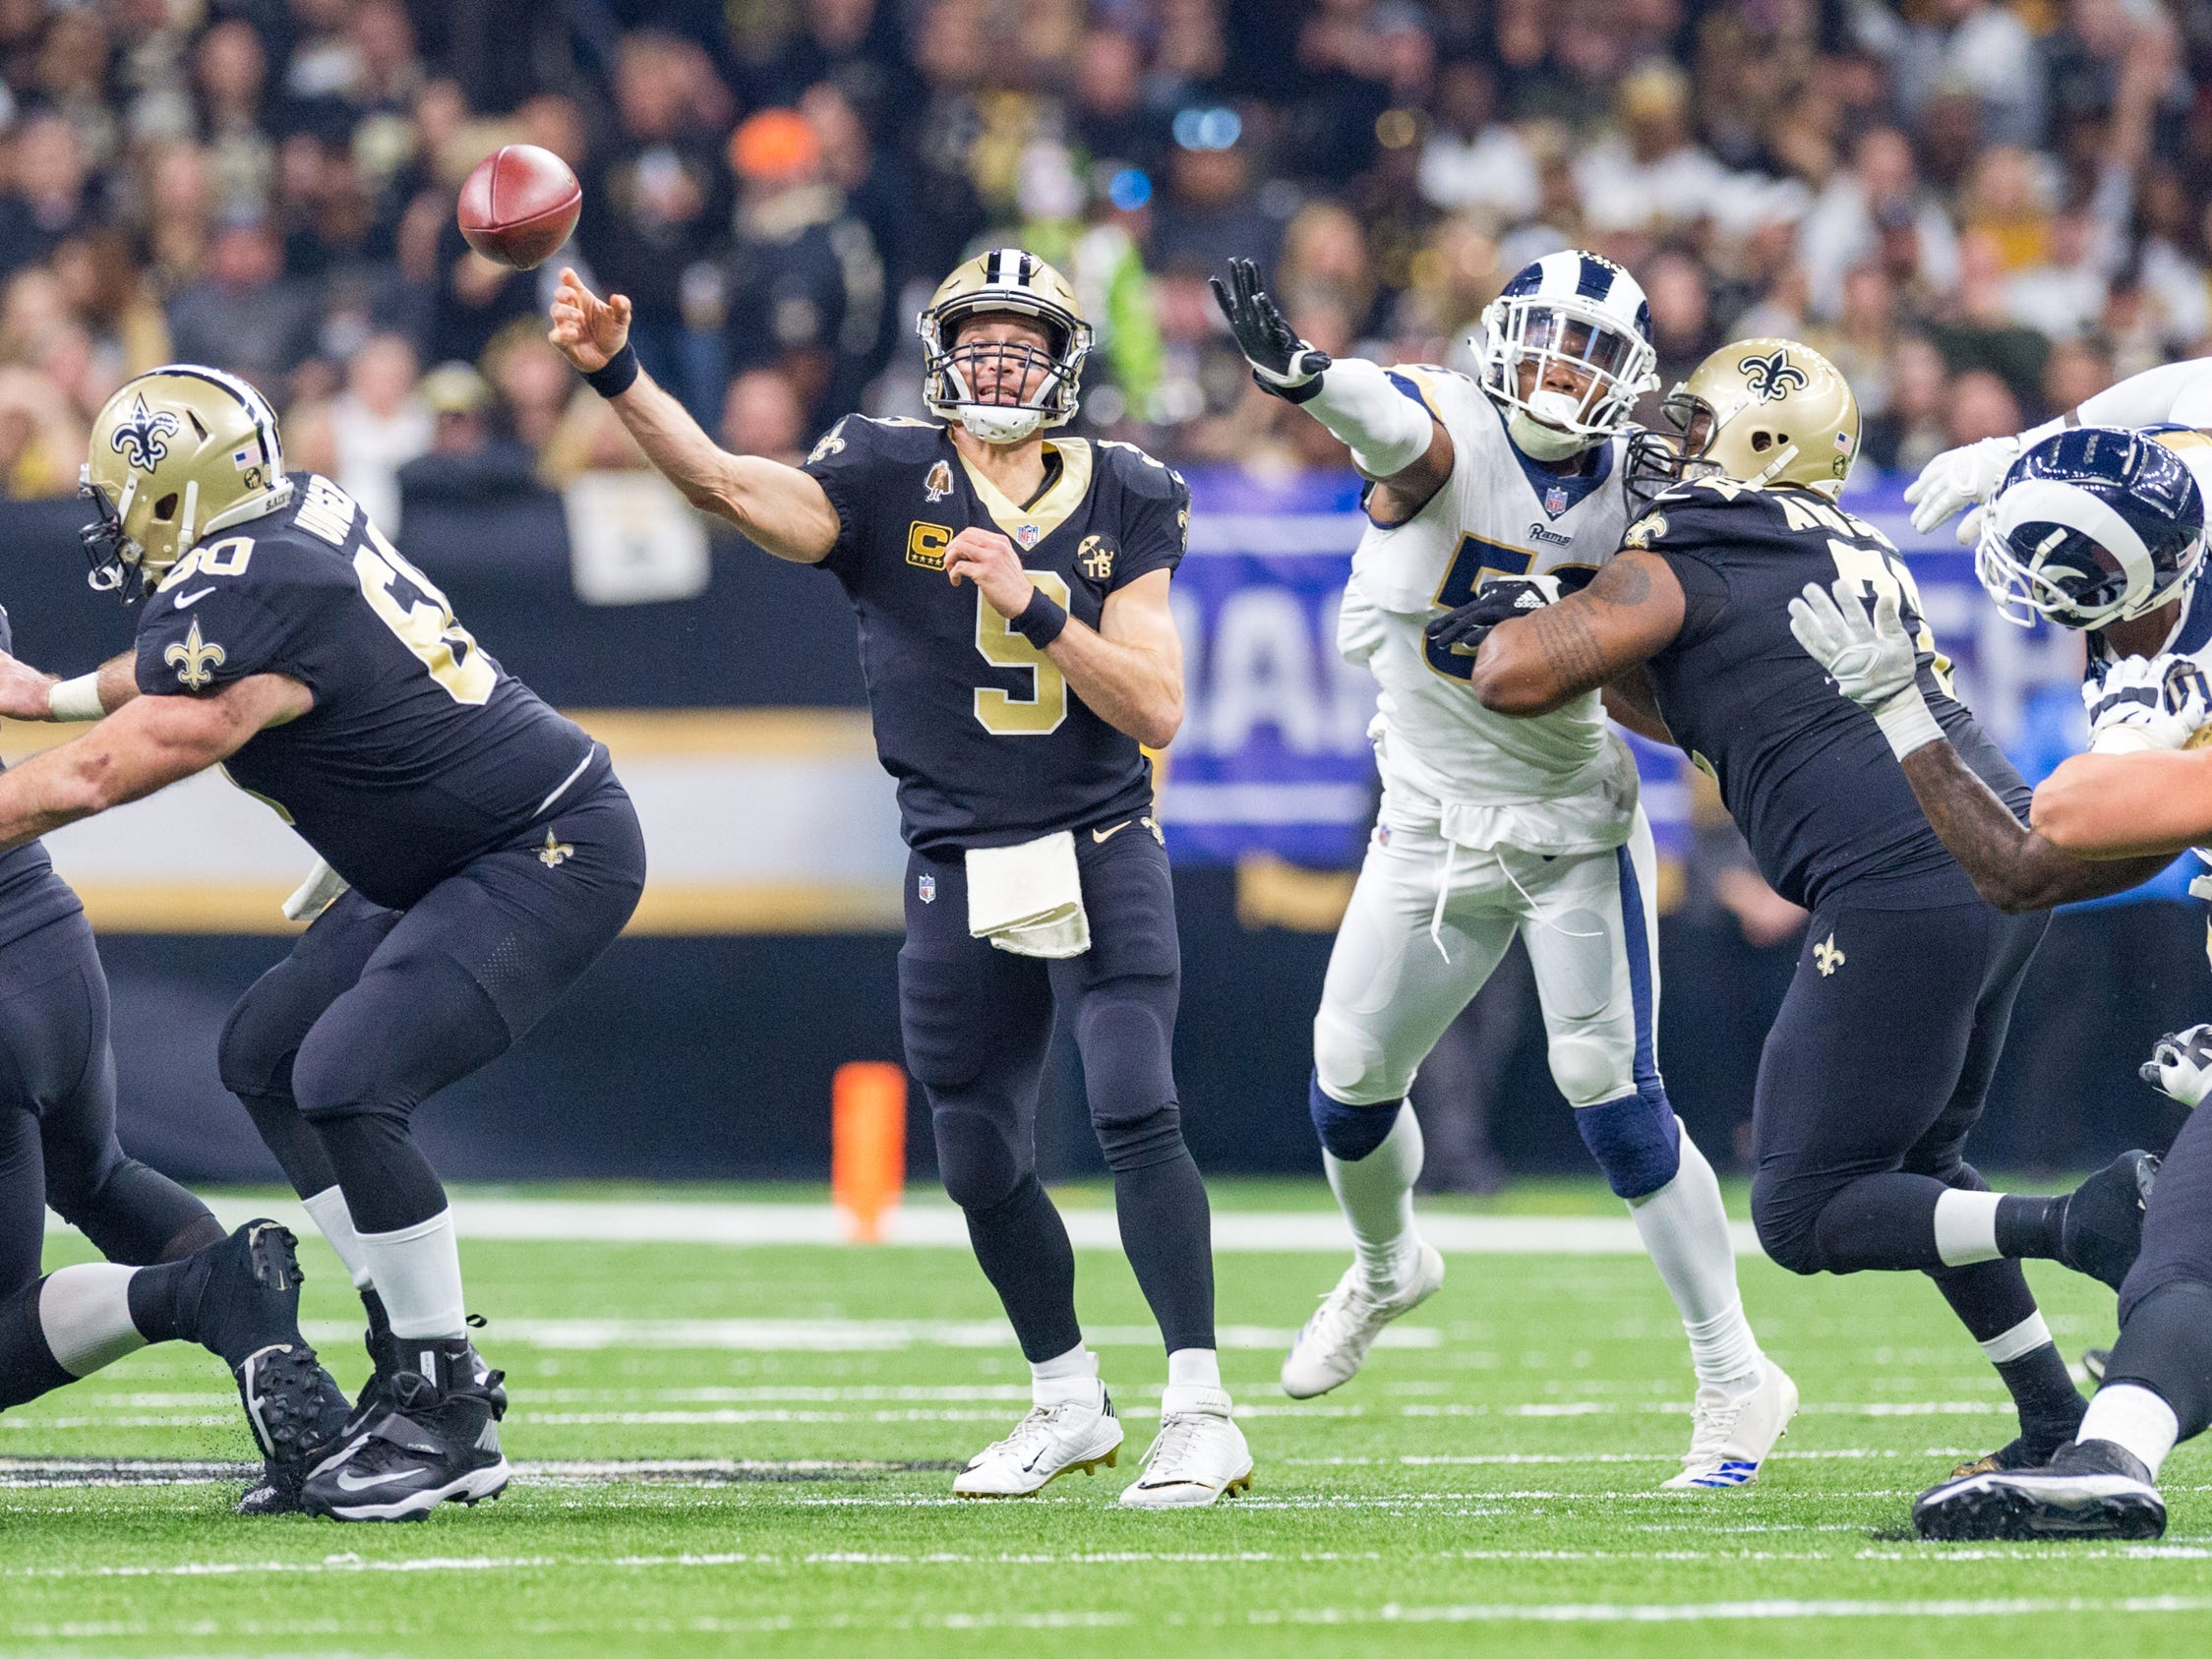 Saints quarterback Drew Brees throws a pass during the NFC Championship playoff football game between the New Orleans Saints and the Los Angeles Rams at the Mercedes-Benz Superdome in New Orleans. Sunday, Jan. 20, 2019.